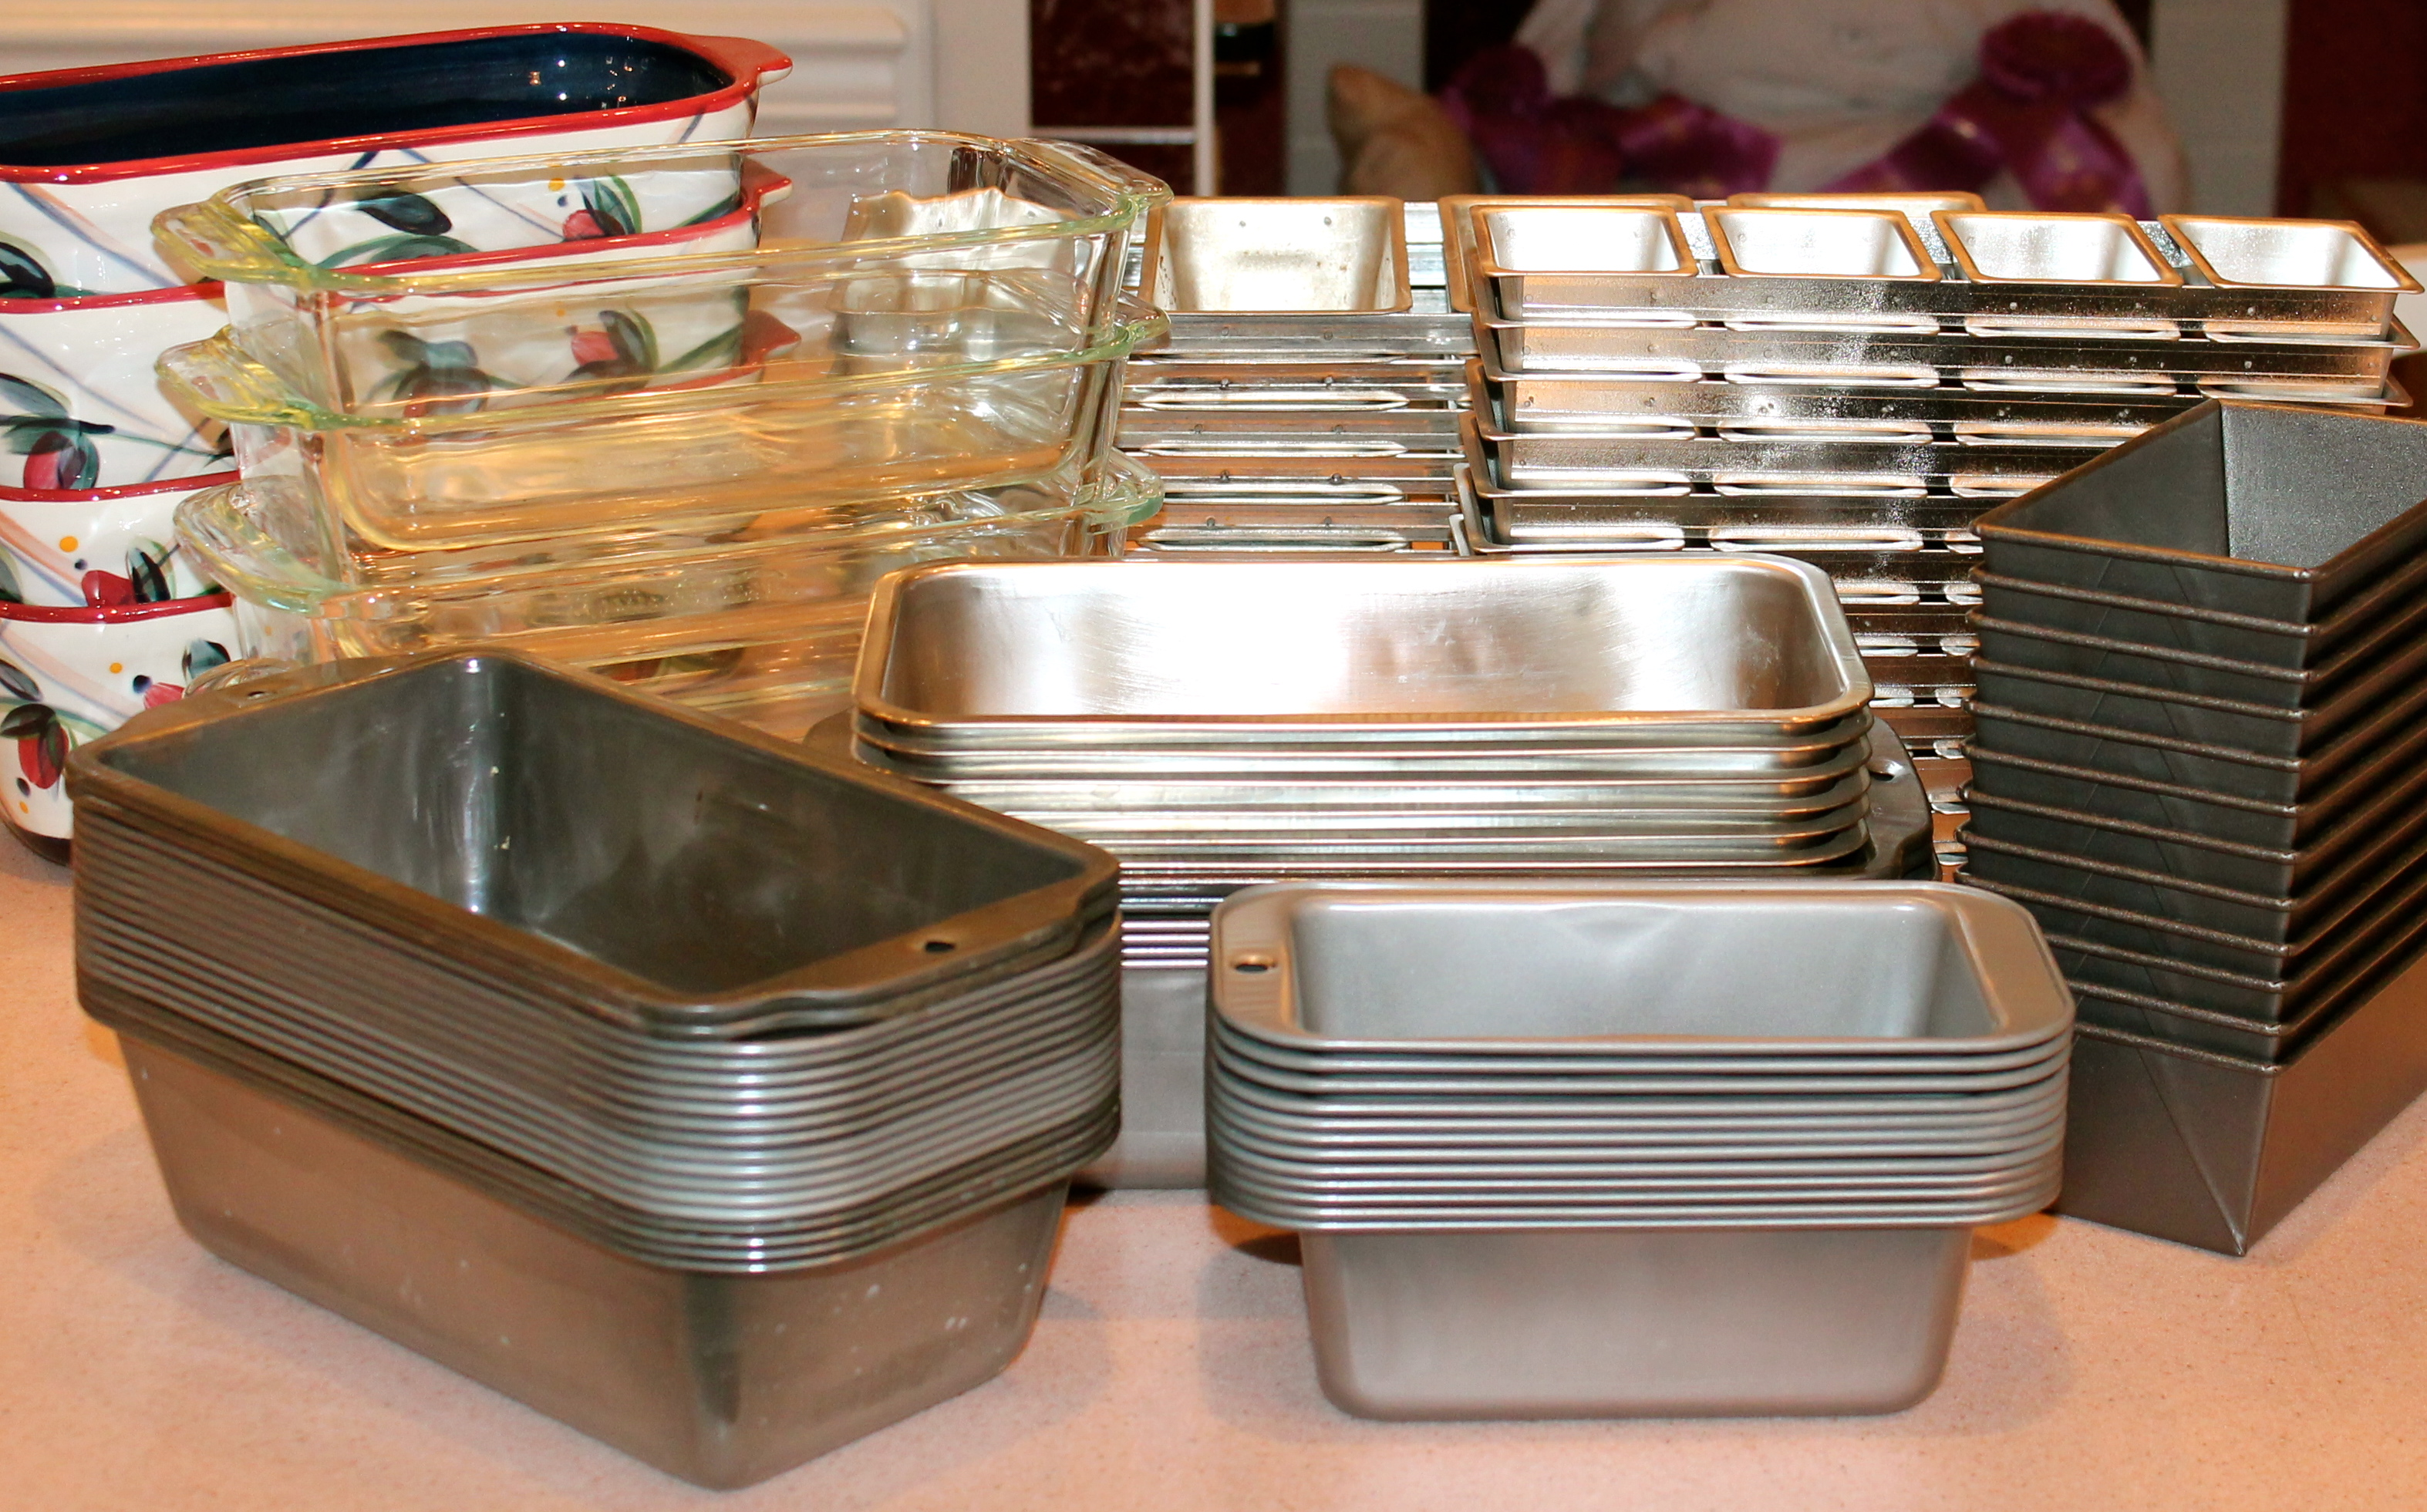 The low down on loaf pans what size kind kitchen encounters img1930 nvjuhfo Images